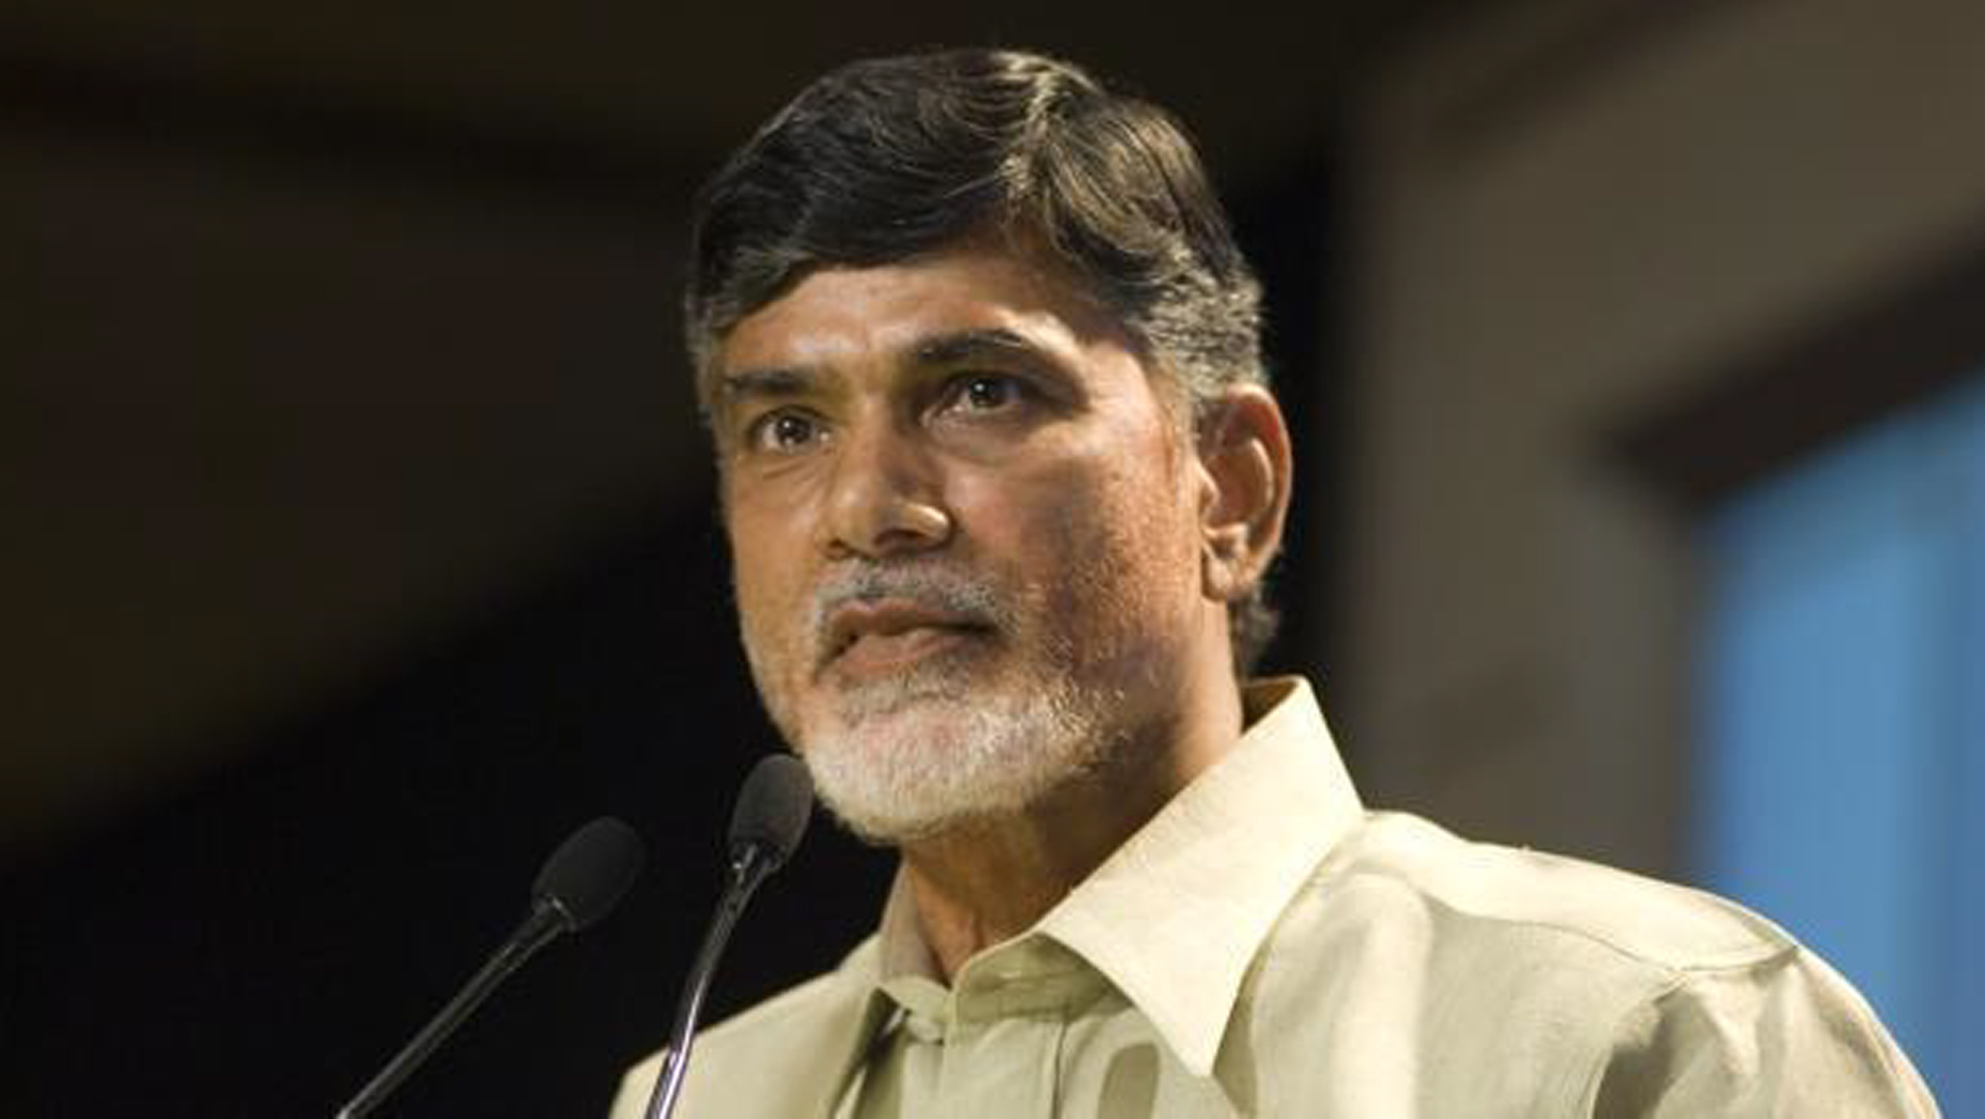 chandrababutoparticipateinghmcelectioncampaign